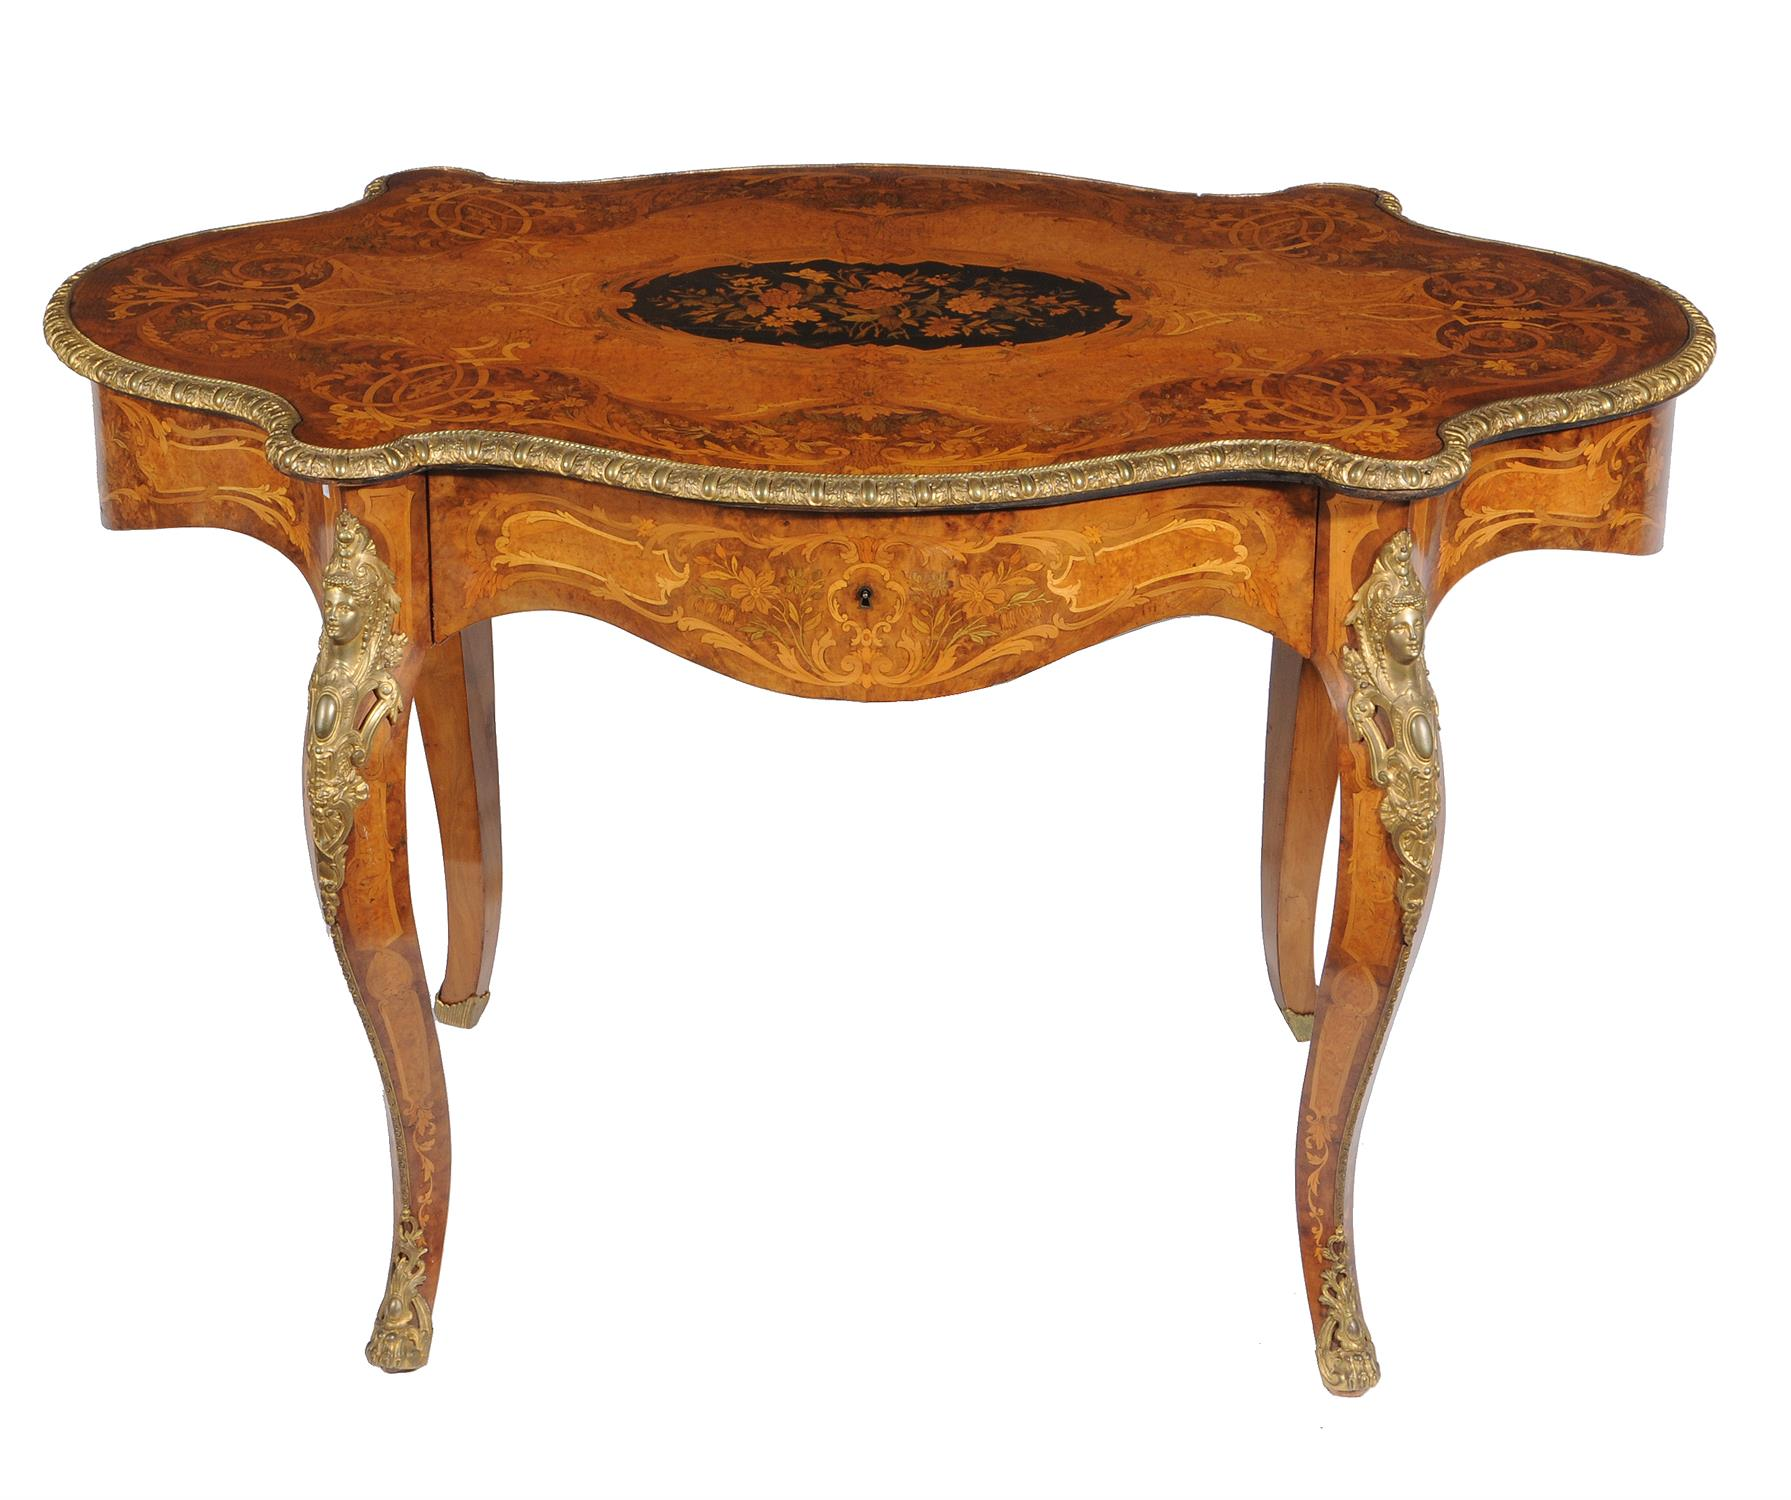 Lot 50 - A French walnut, gilt metal mounted and floral marquetry inlaid centre table,